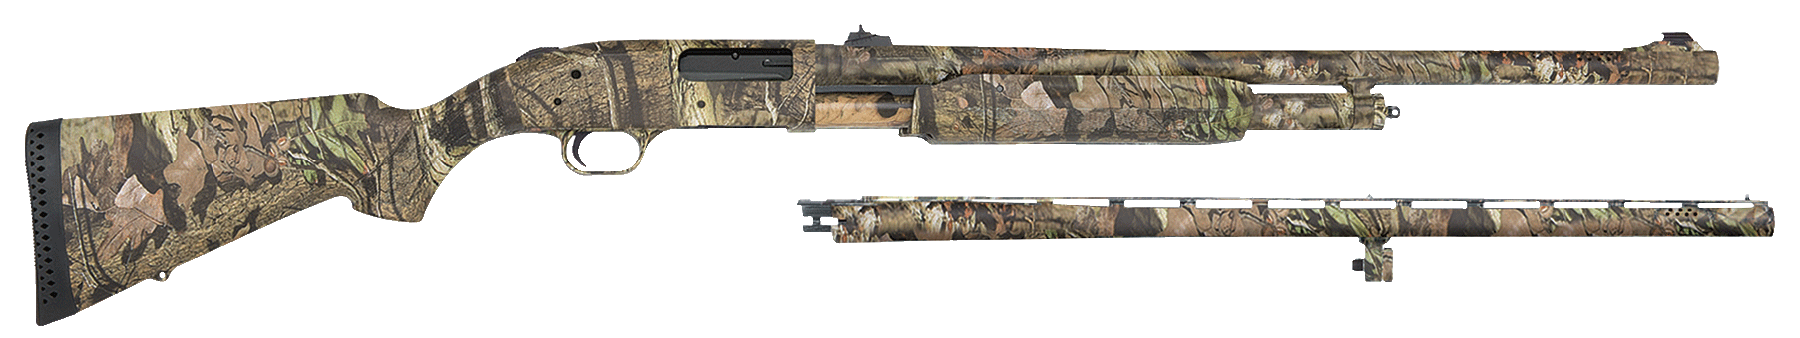 Mossberg 54182 500 Combo Shotguns Pump  20 Mossy Oak Break-Up Infinity